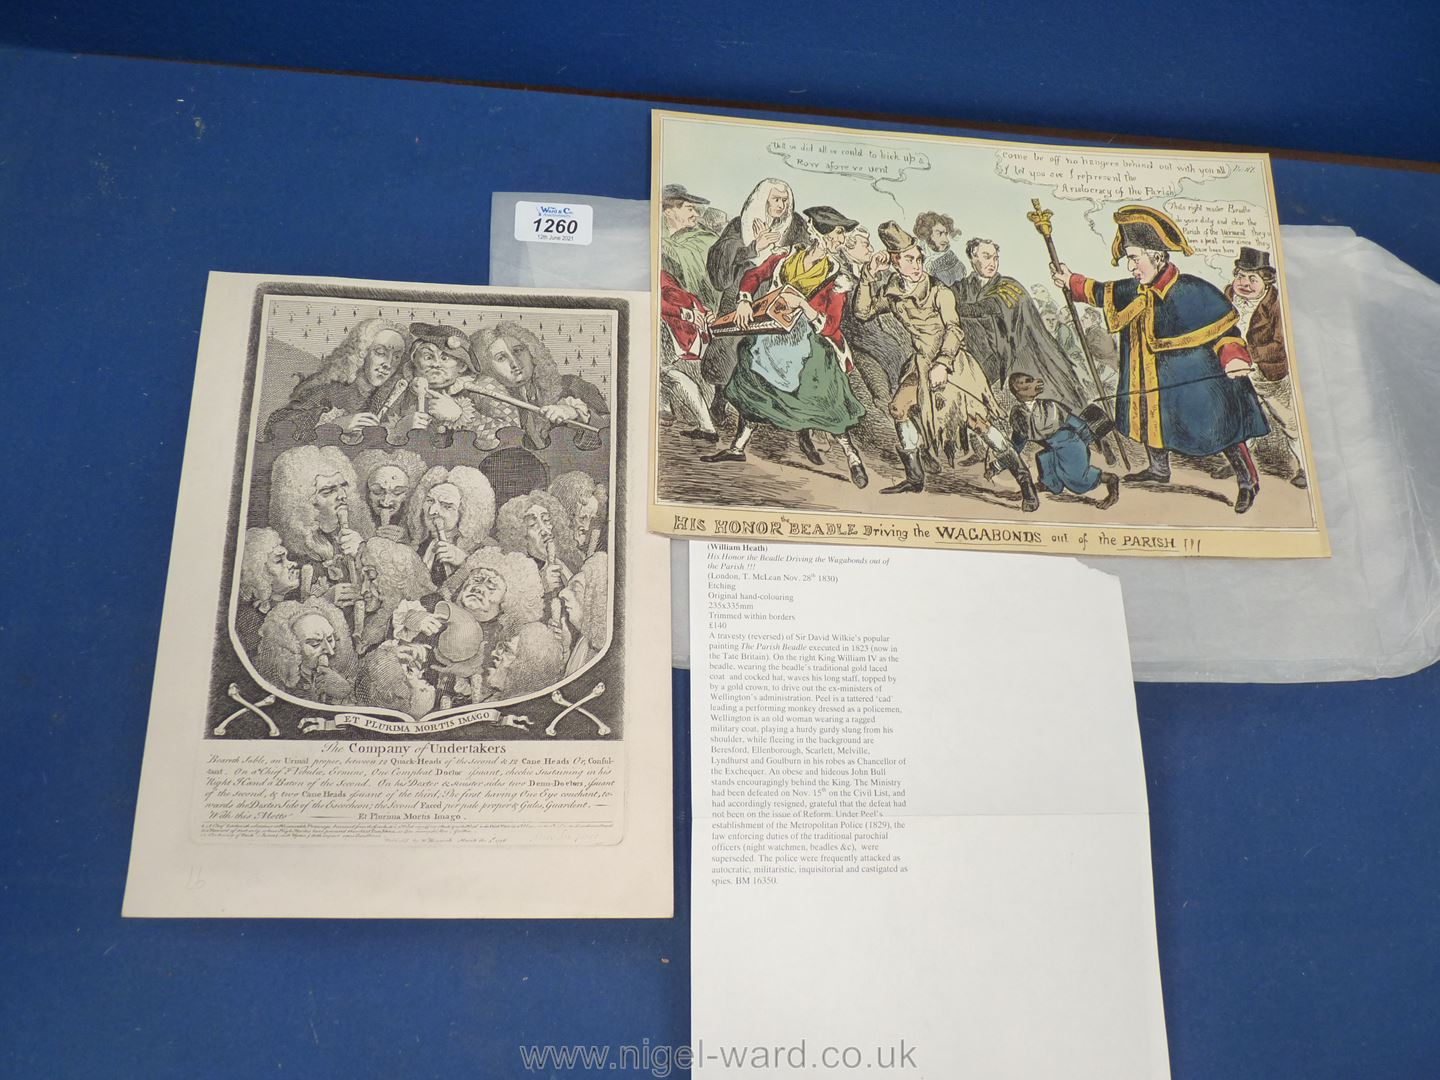 A scarce satirical engraving by William Heath (1830) 'His Honor the Beadle Driving the Vagabonds